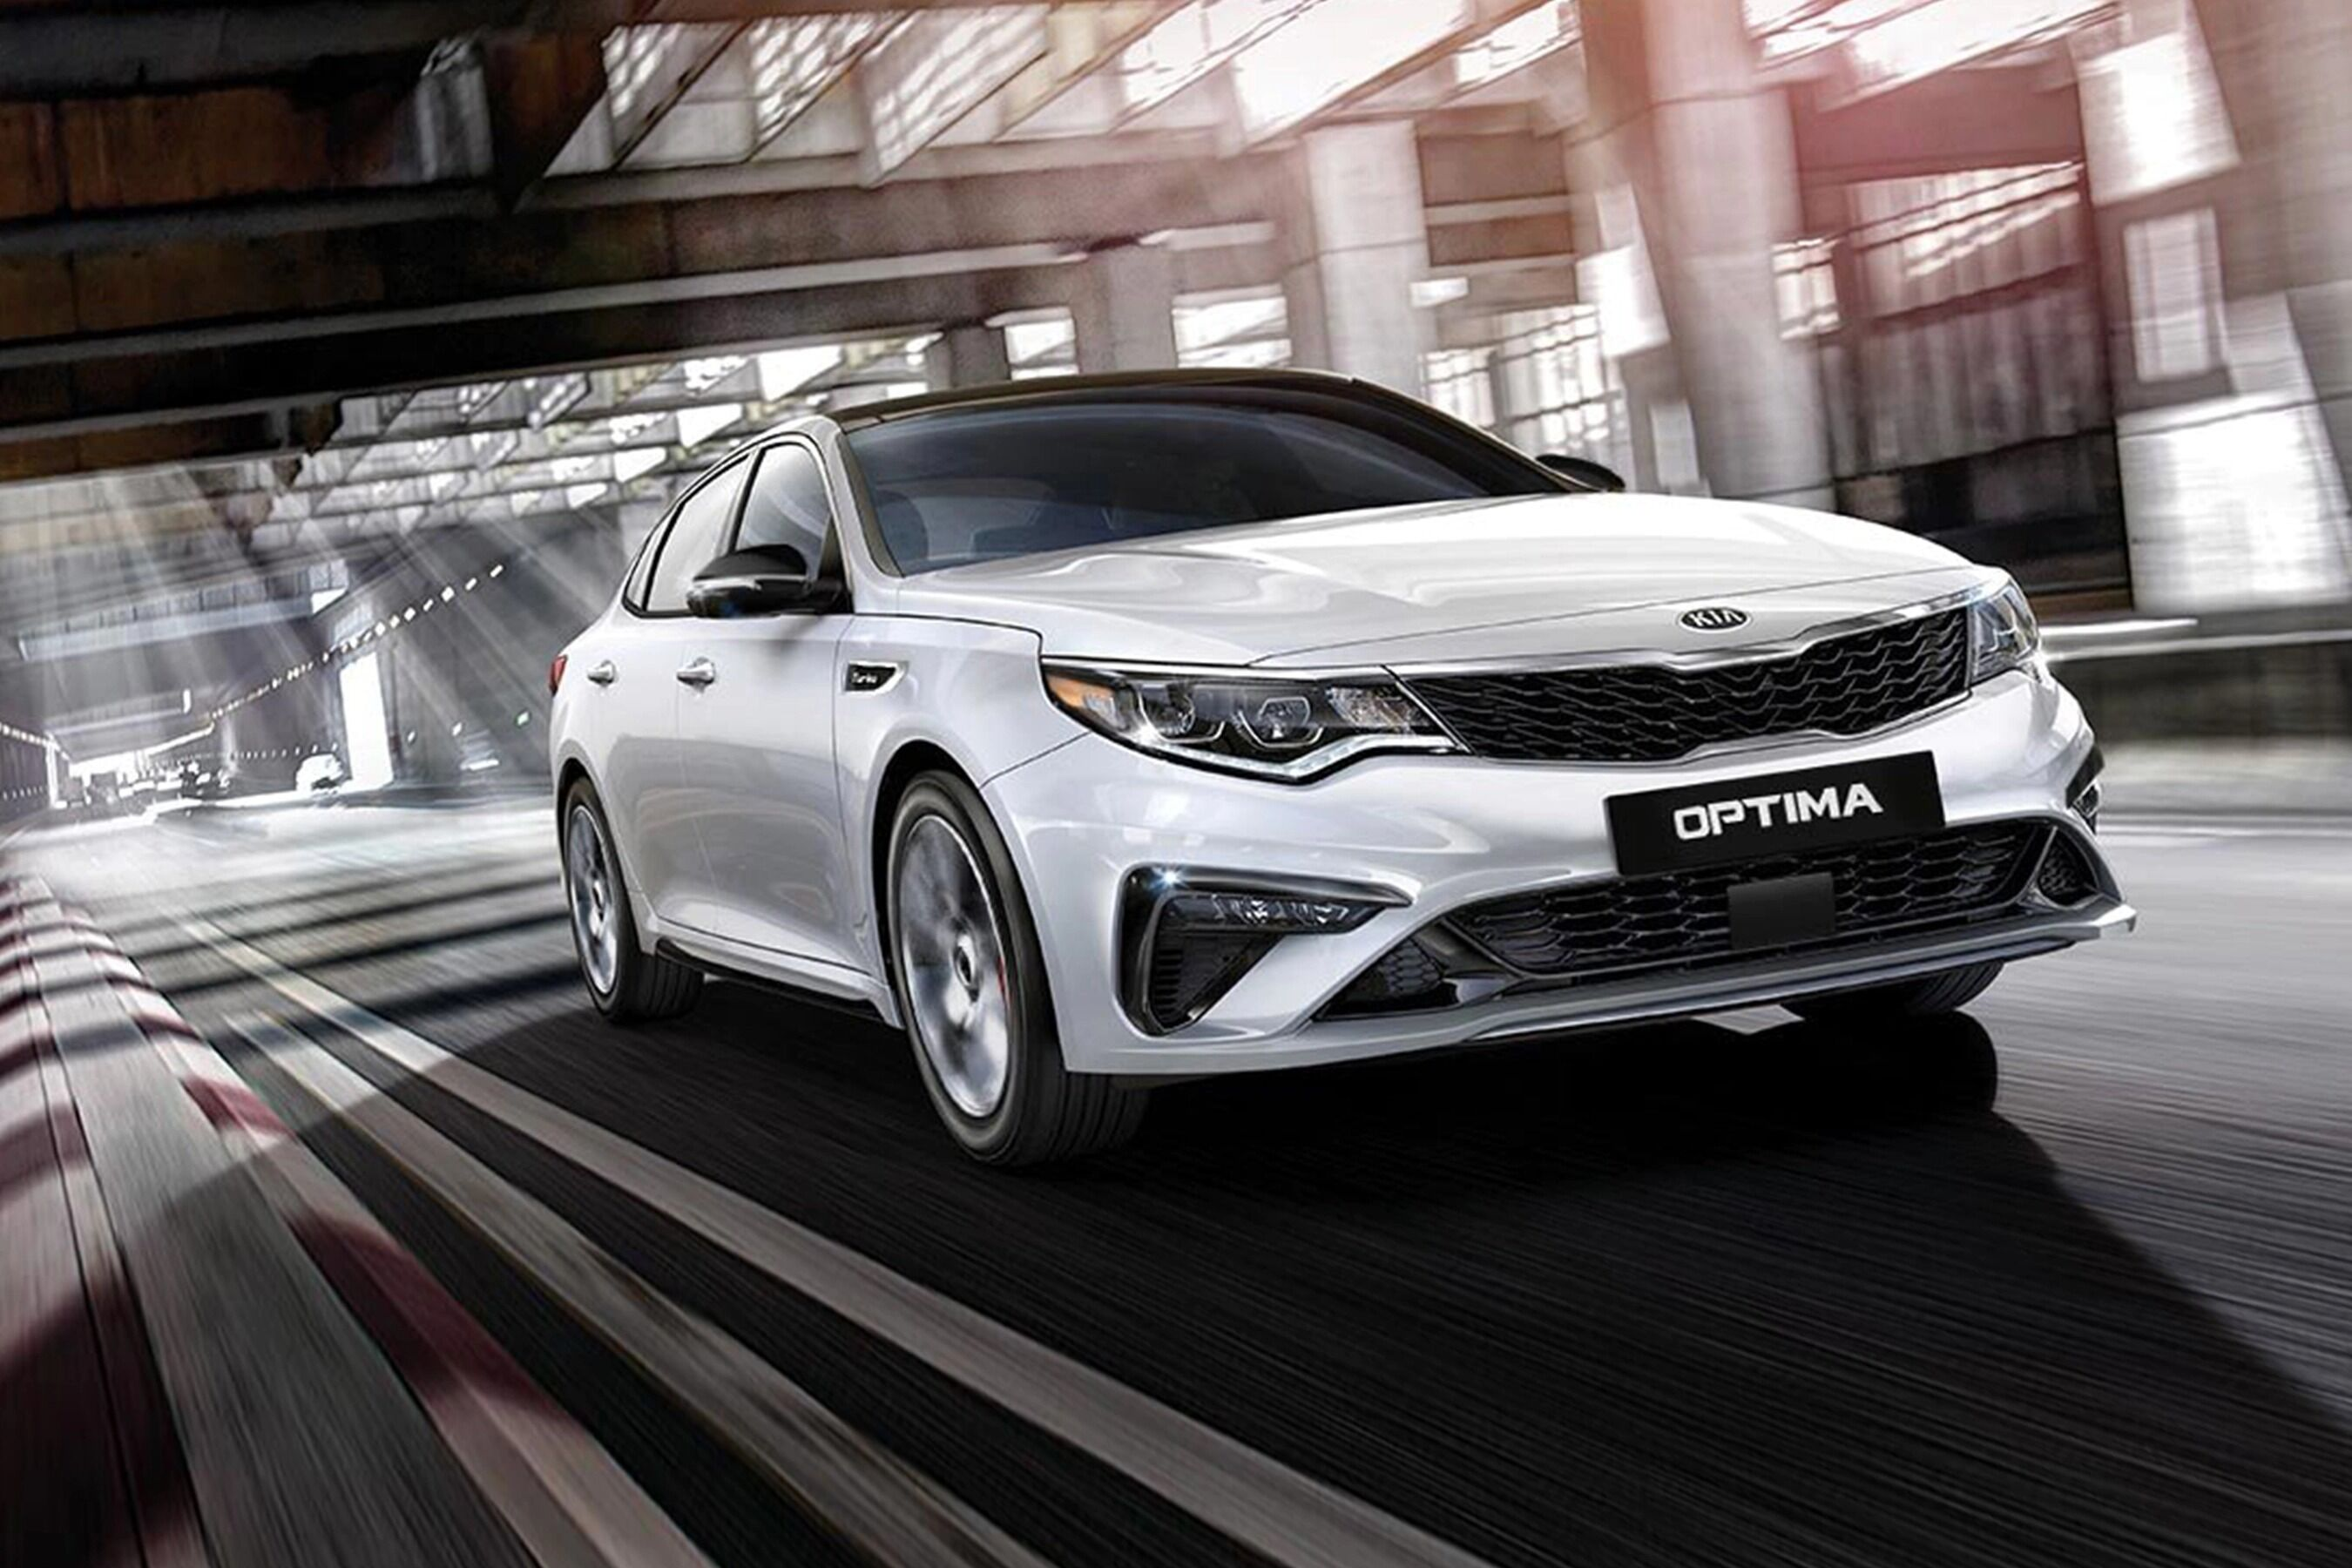 Exterior view of the front of a silver 2020 Kia Optima